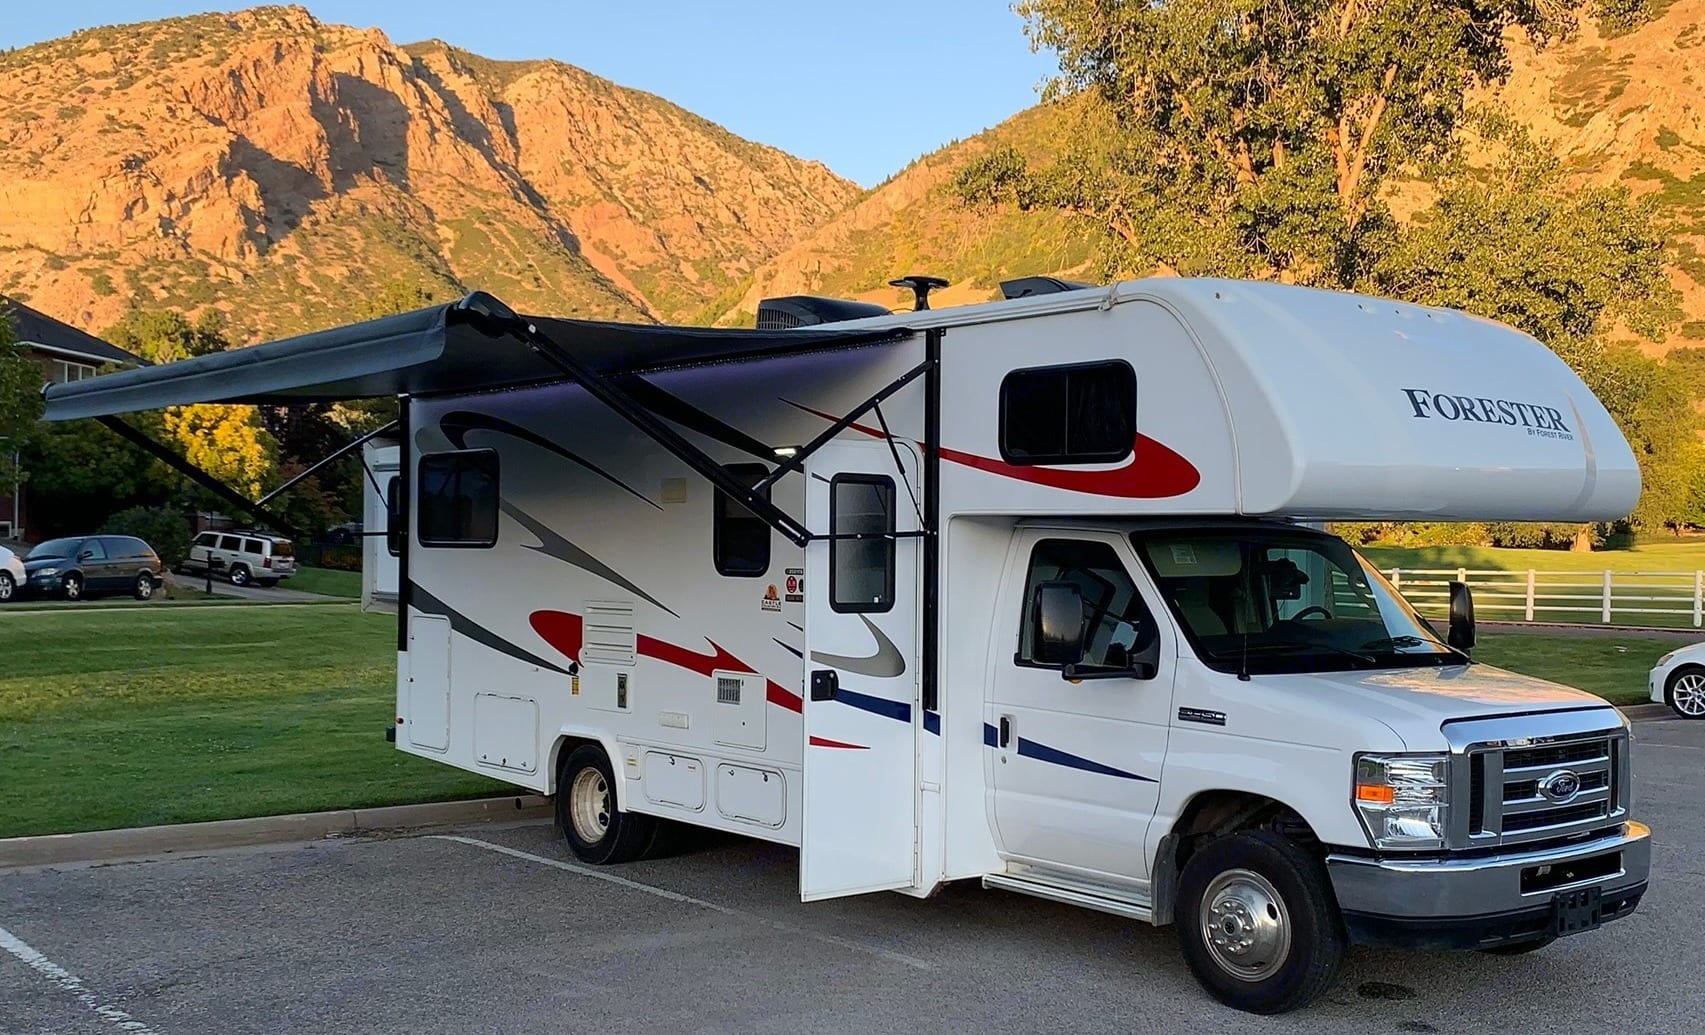 Ready to Head for the Mountains, Lakes, Rivers, and your Favorite RV Spot! 27 ft RV, 2 Slide Bedroom enlarges the RV length 4ft in back and 2ft wider.. Forest River Forester 2018